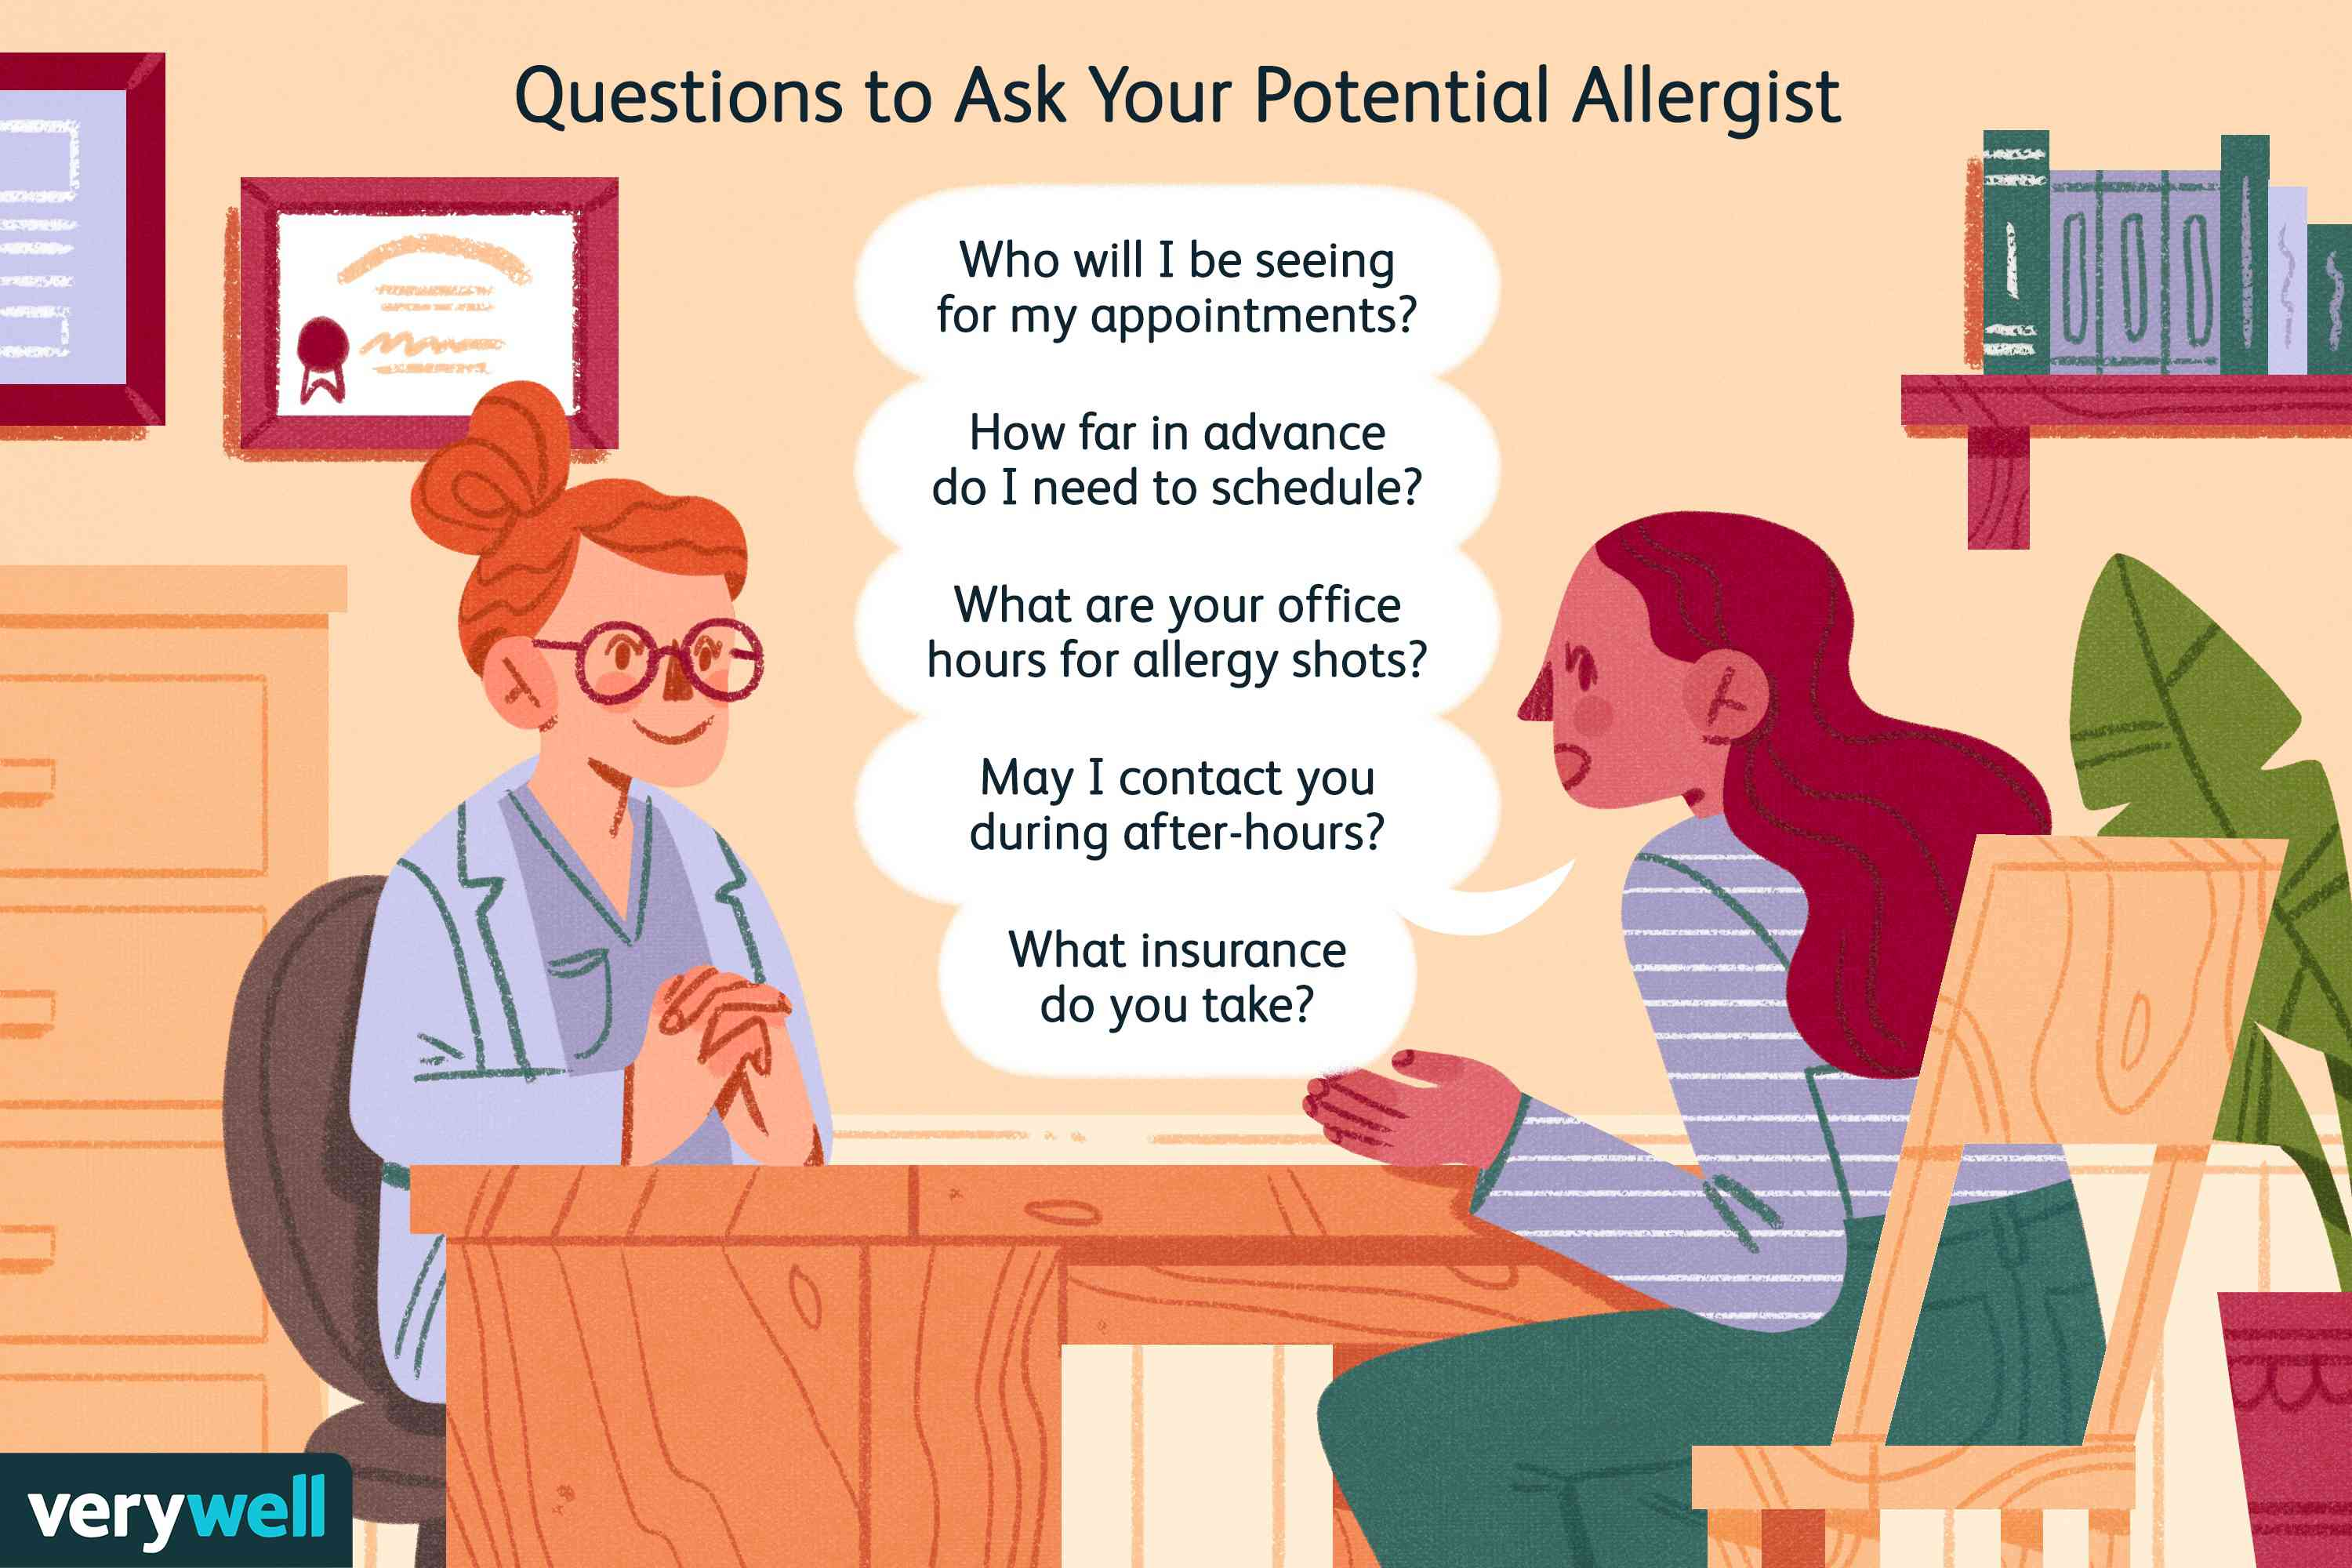 Questions to Ask Your Potential Allergist